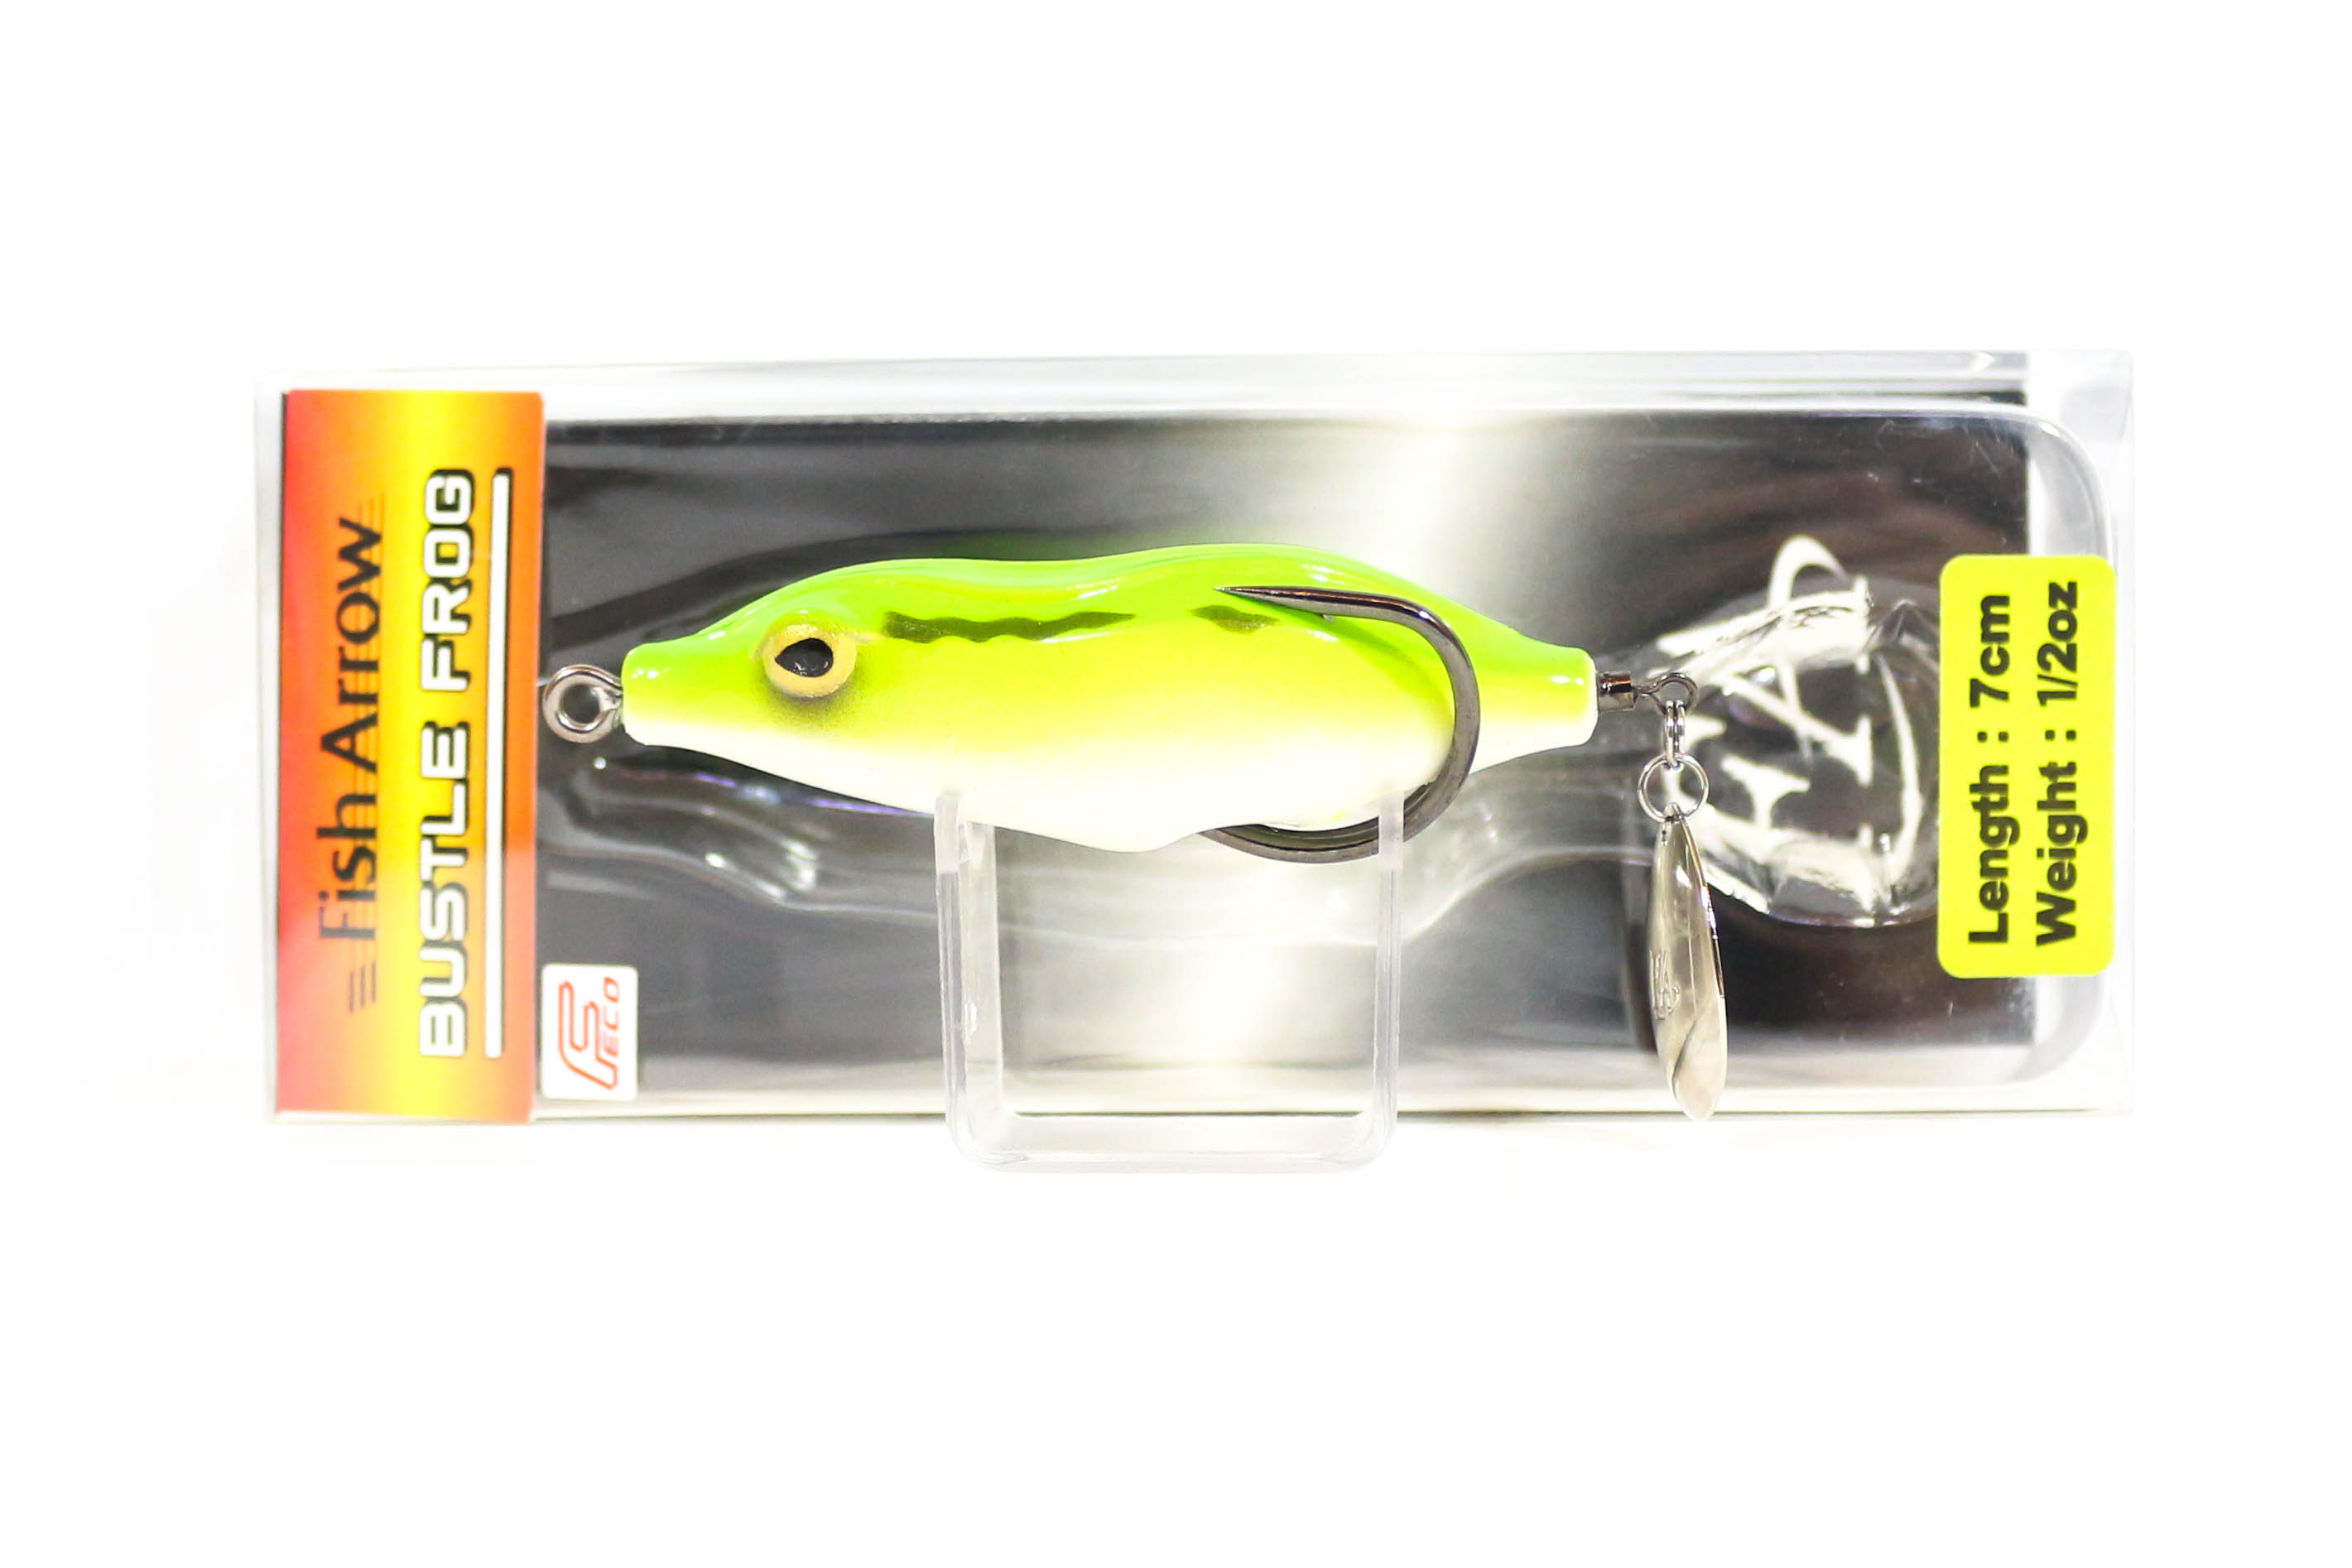 Fish Arrow Maxi Frog 7 cm 1/2 oz Soft Plastic Floating Lure 01 (4217)